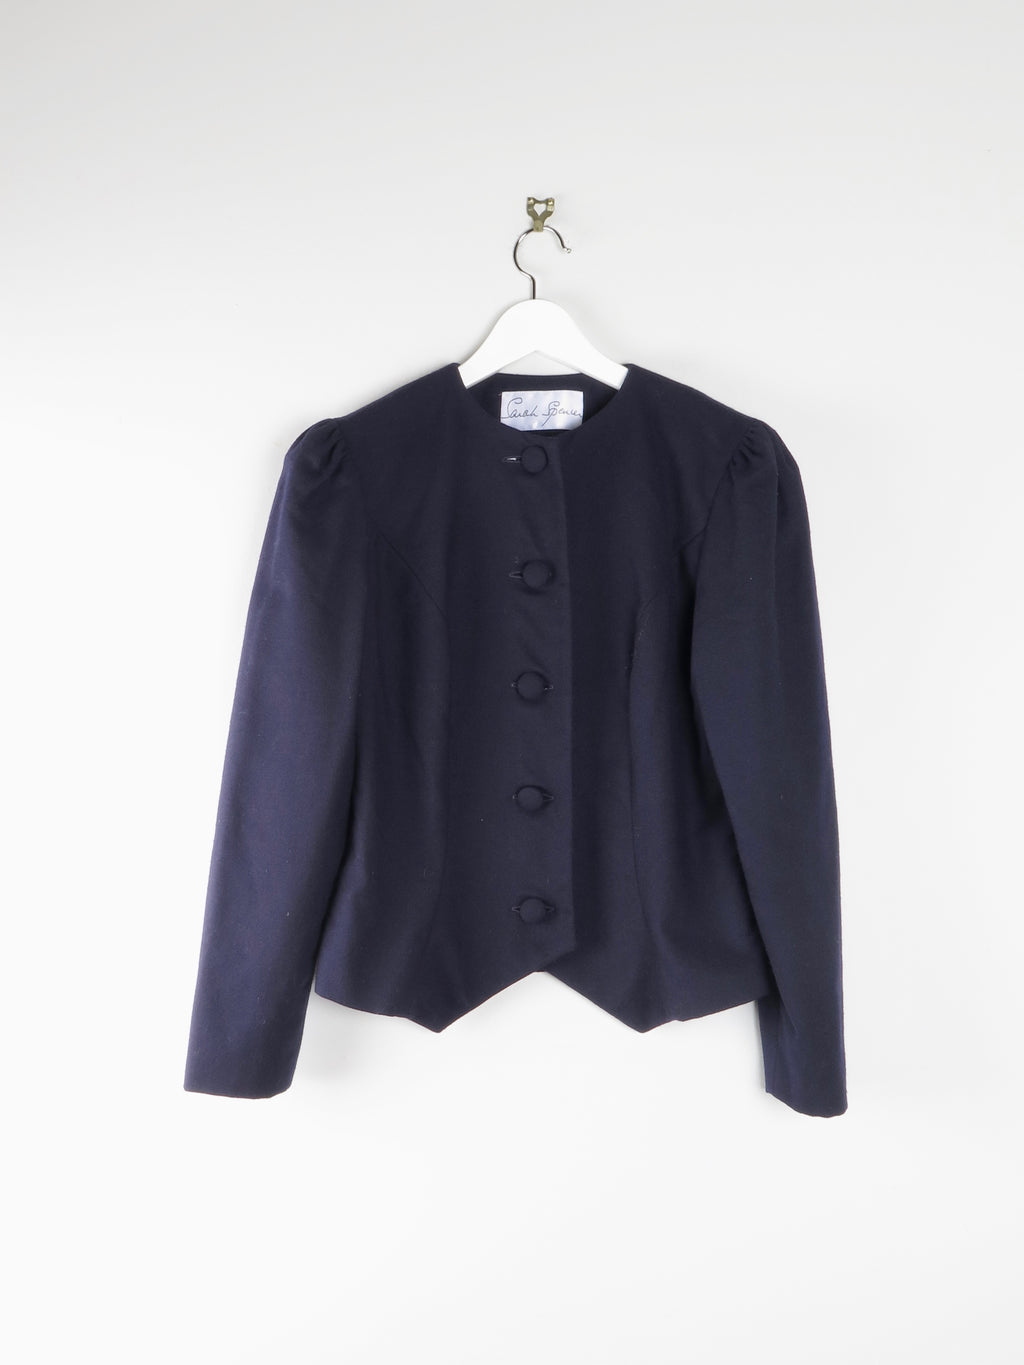 French Navy Light Wool Jacket 10/12